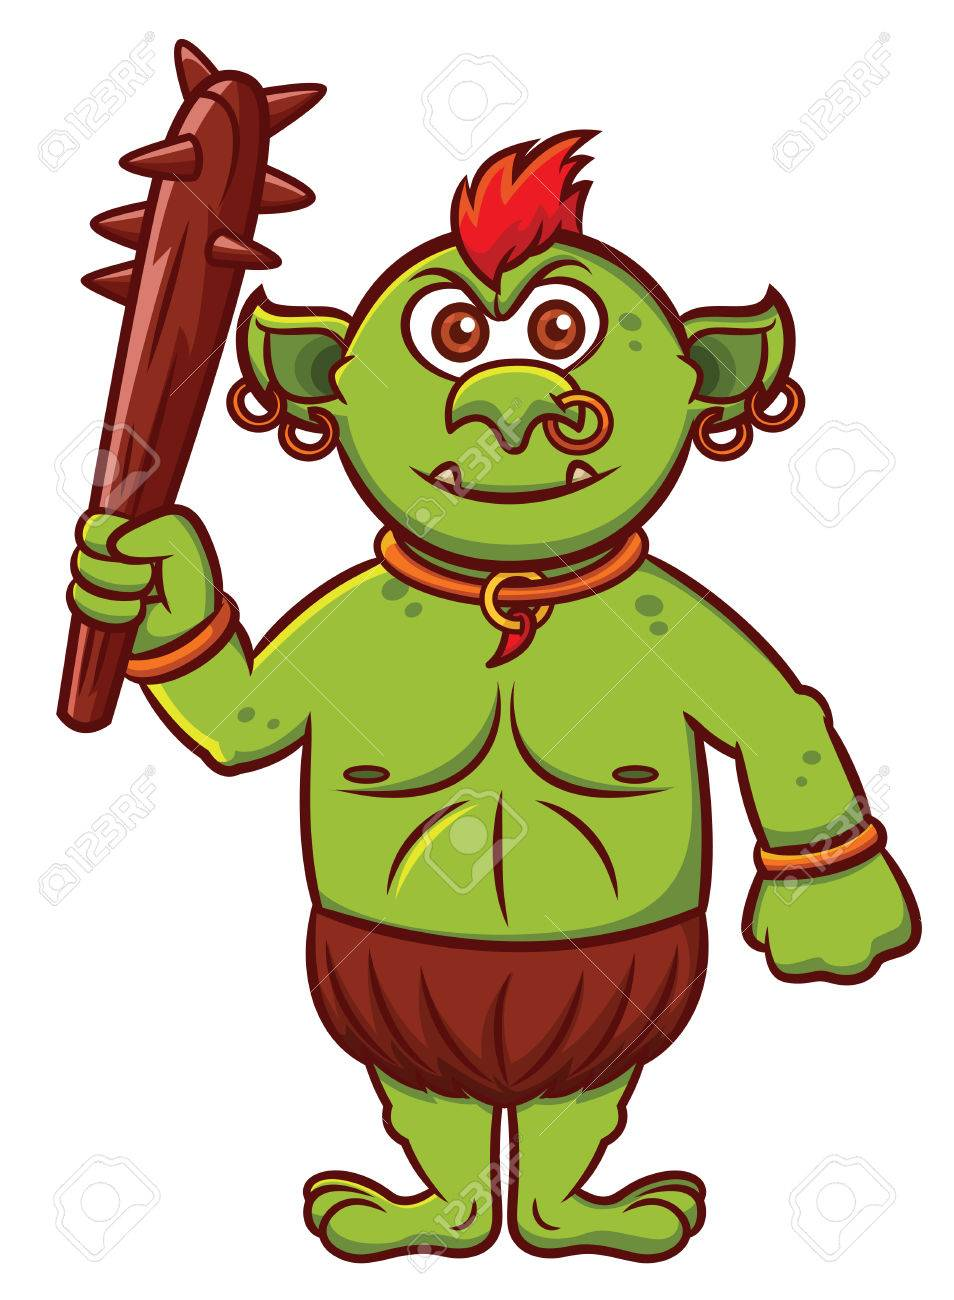 troll cartoon royalty free cliparts vectors and stock illustration rh 123rf com troll clip art in color to print for free troll clipart free